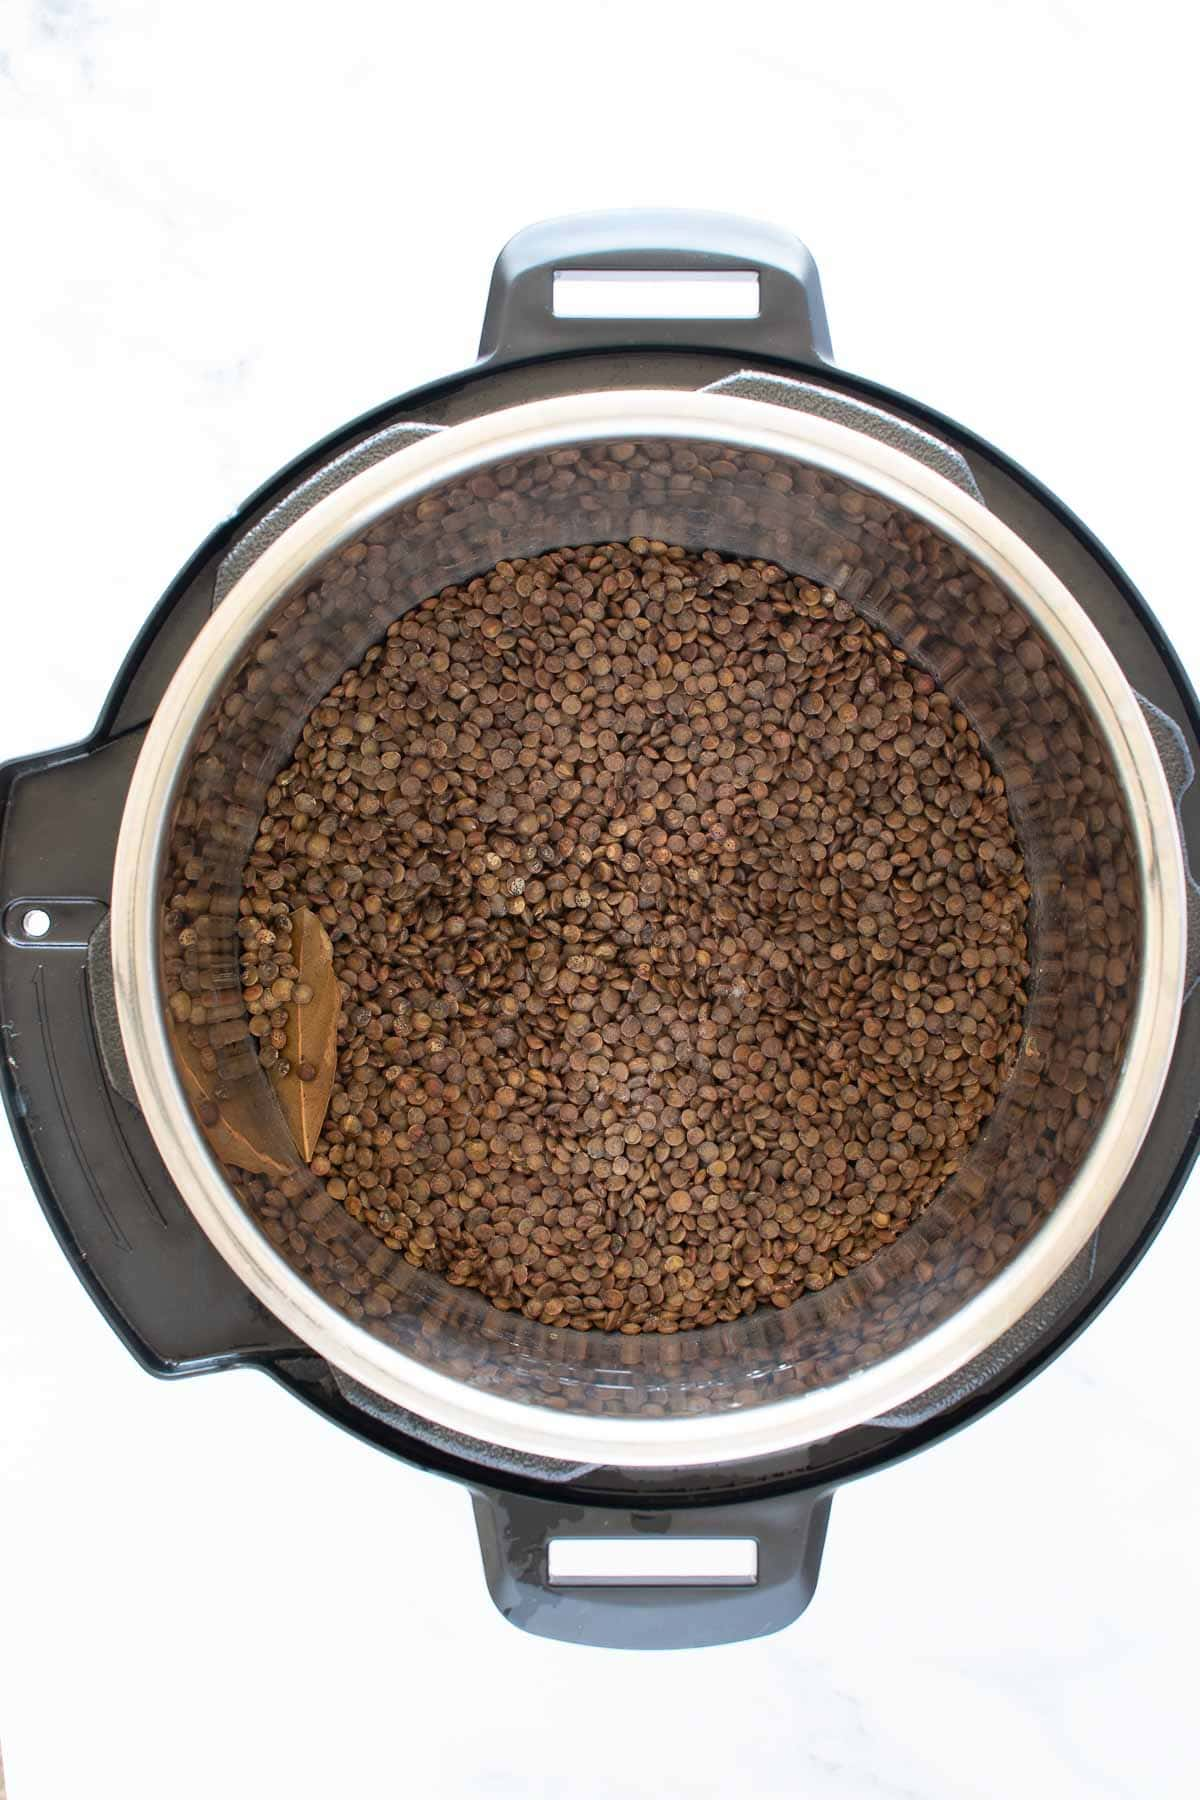 Cooked lentils in an Instant Pot.